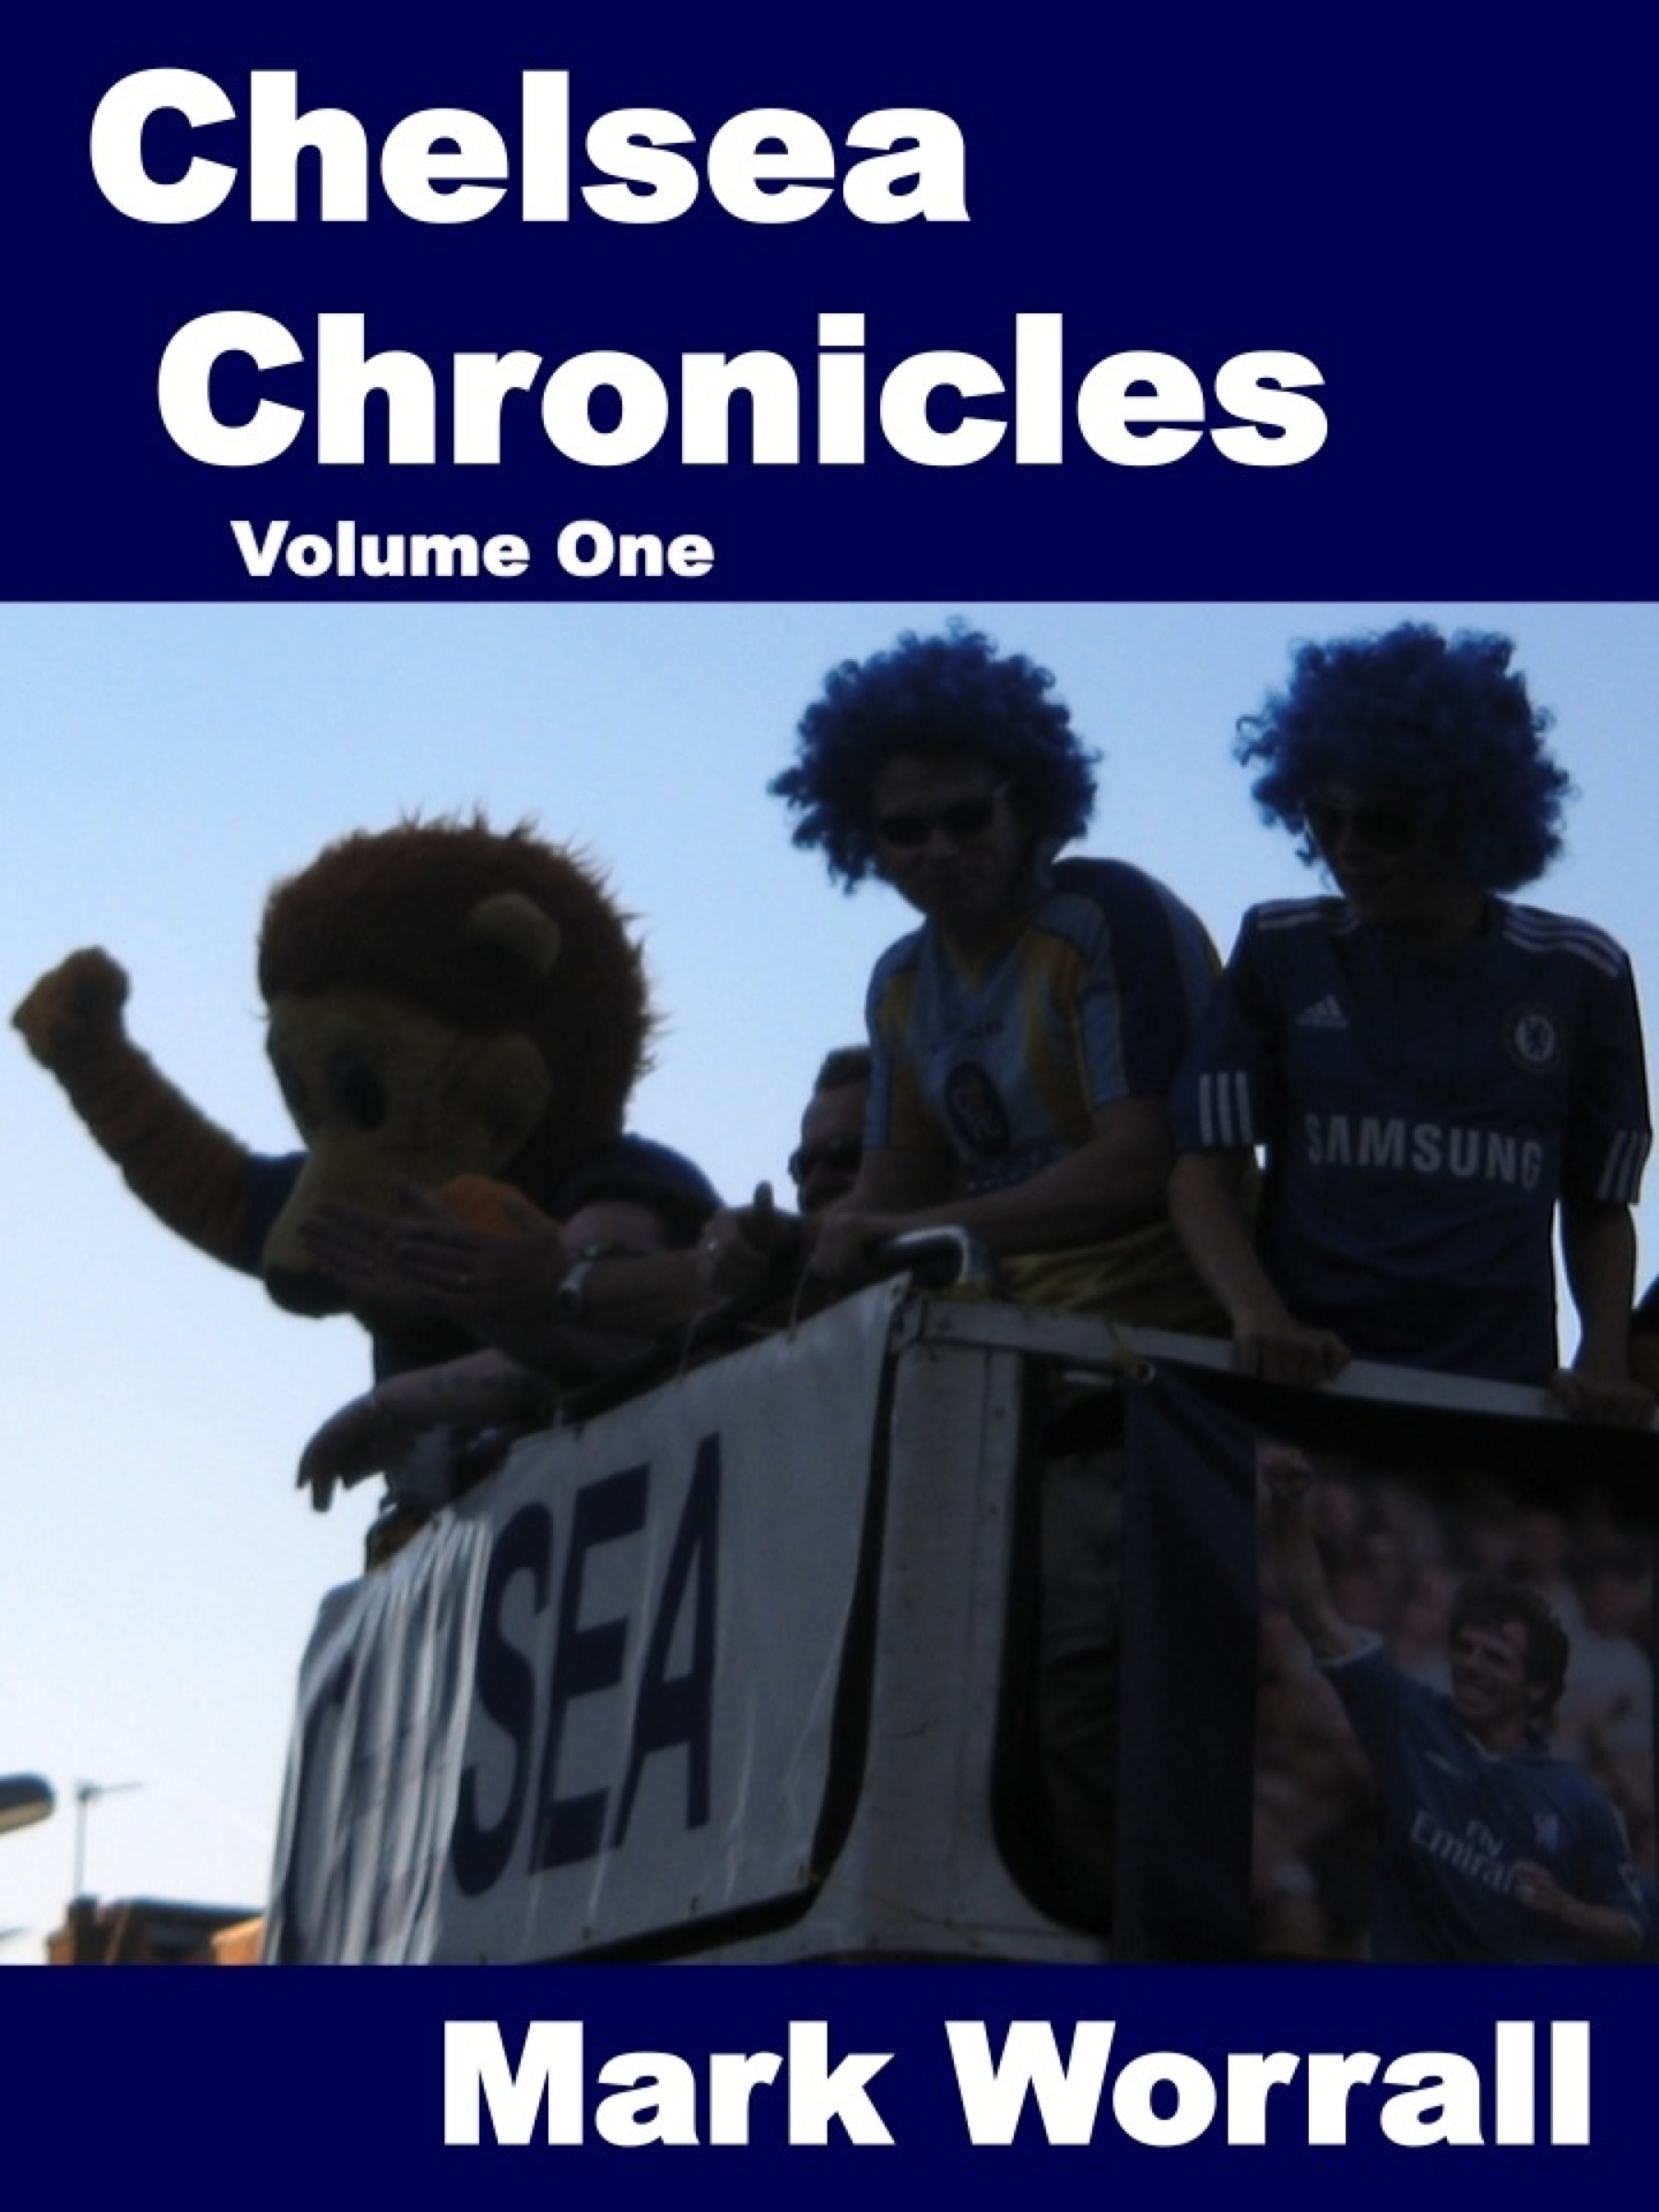 Chelsea Chronicles volume one